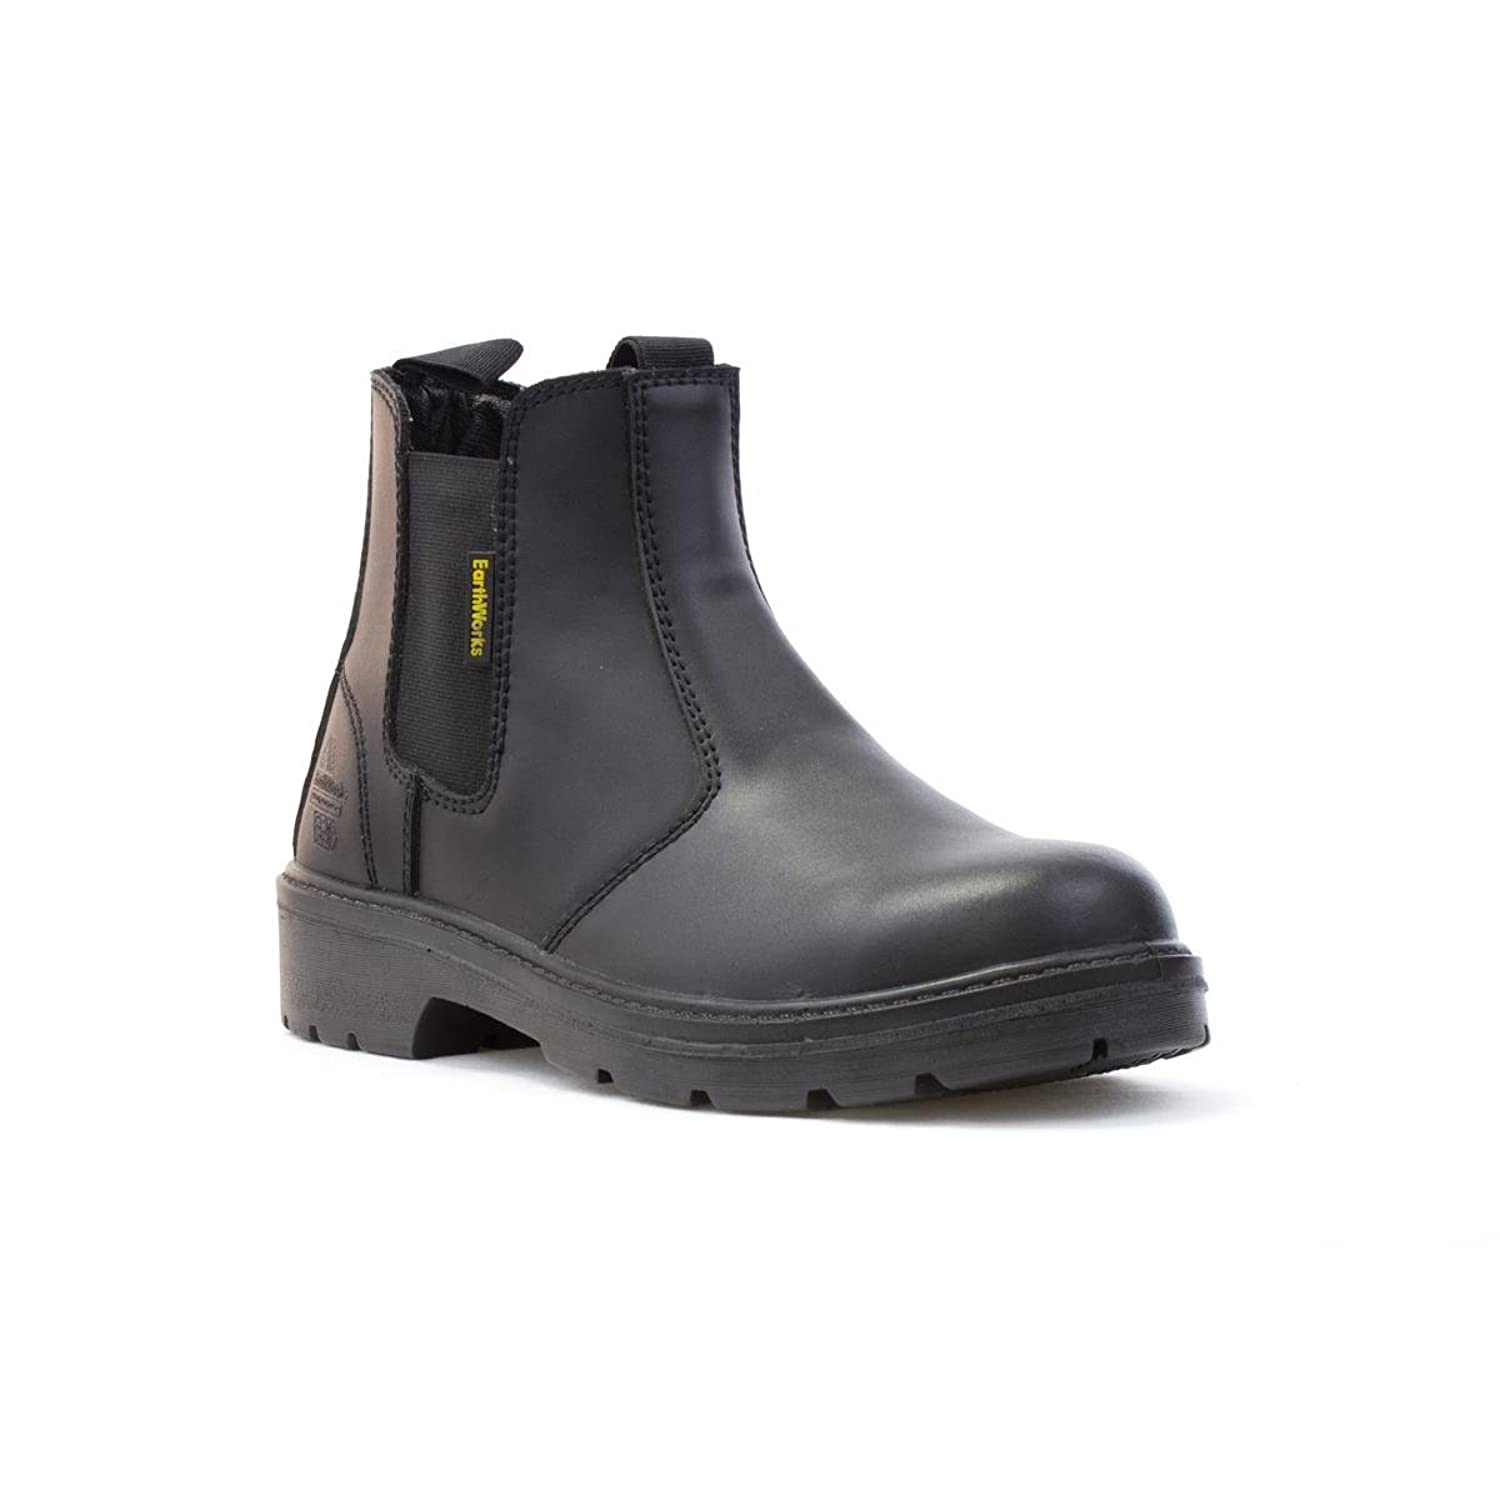 cc8954ed464 50%OFF Earth Works - - EarthWorks Mens Black Chelsea Safety Boot ...